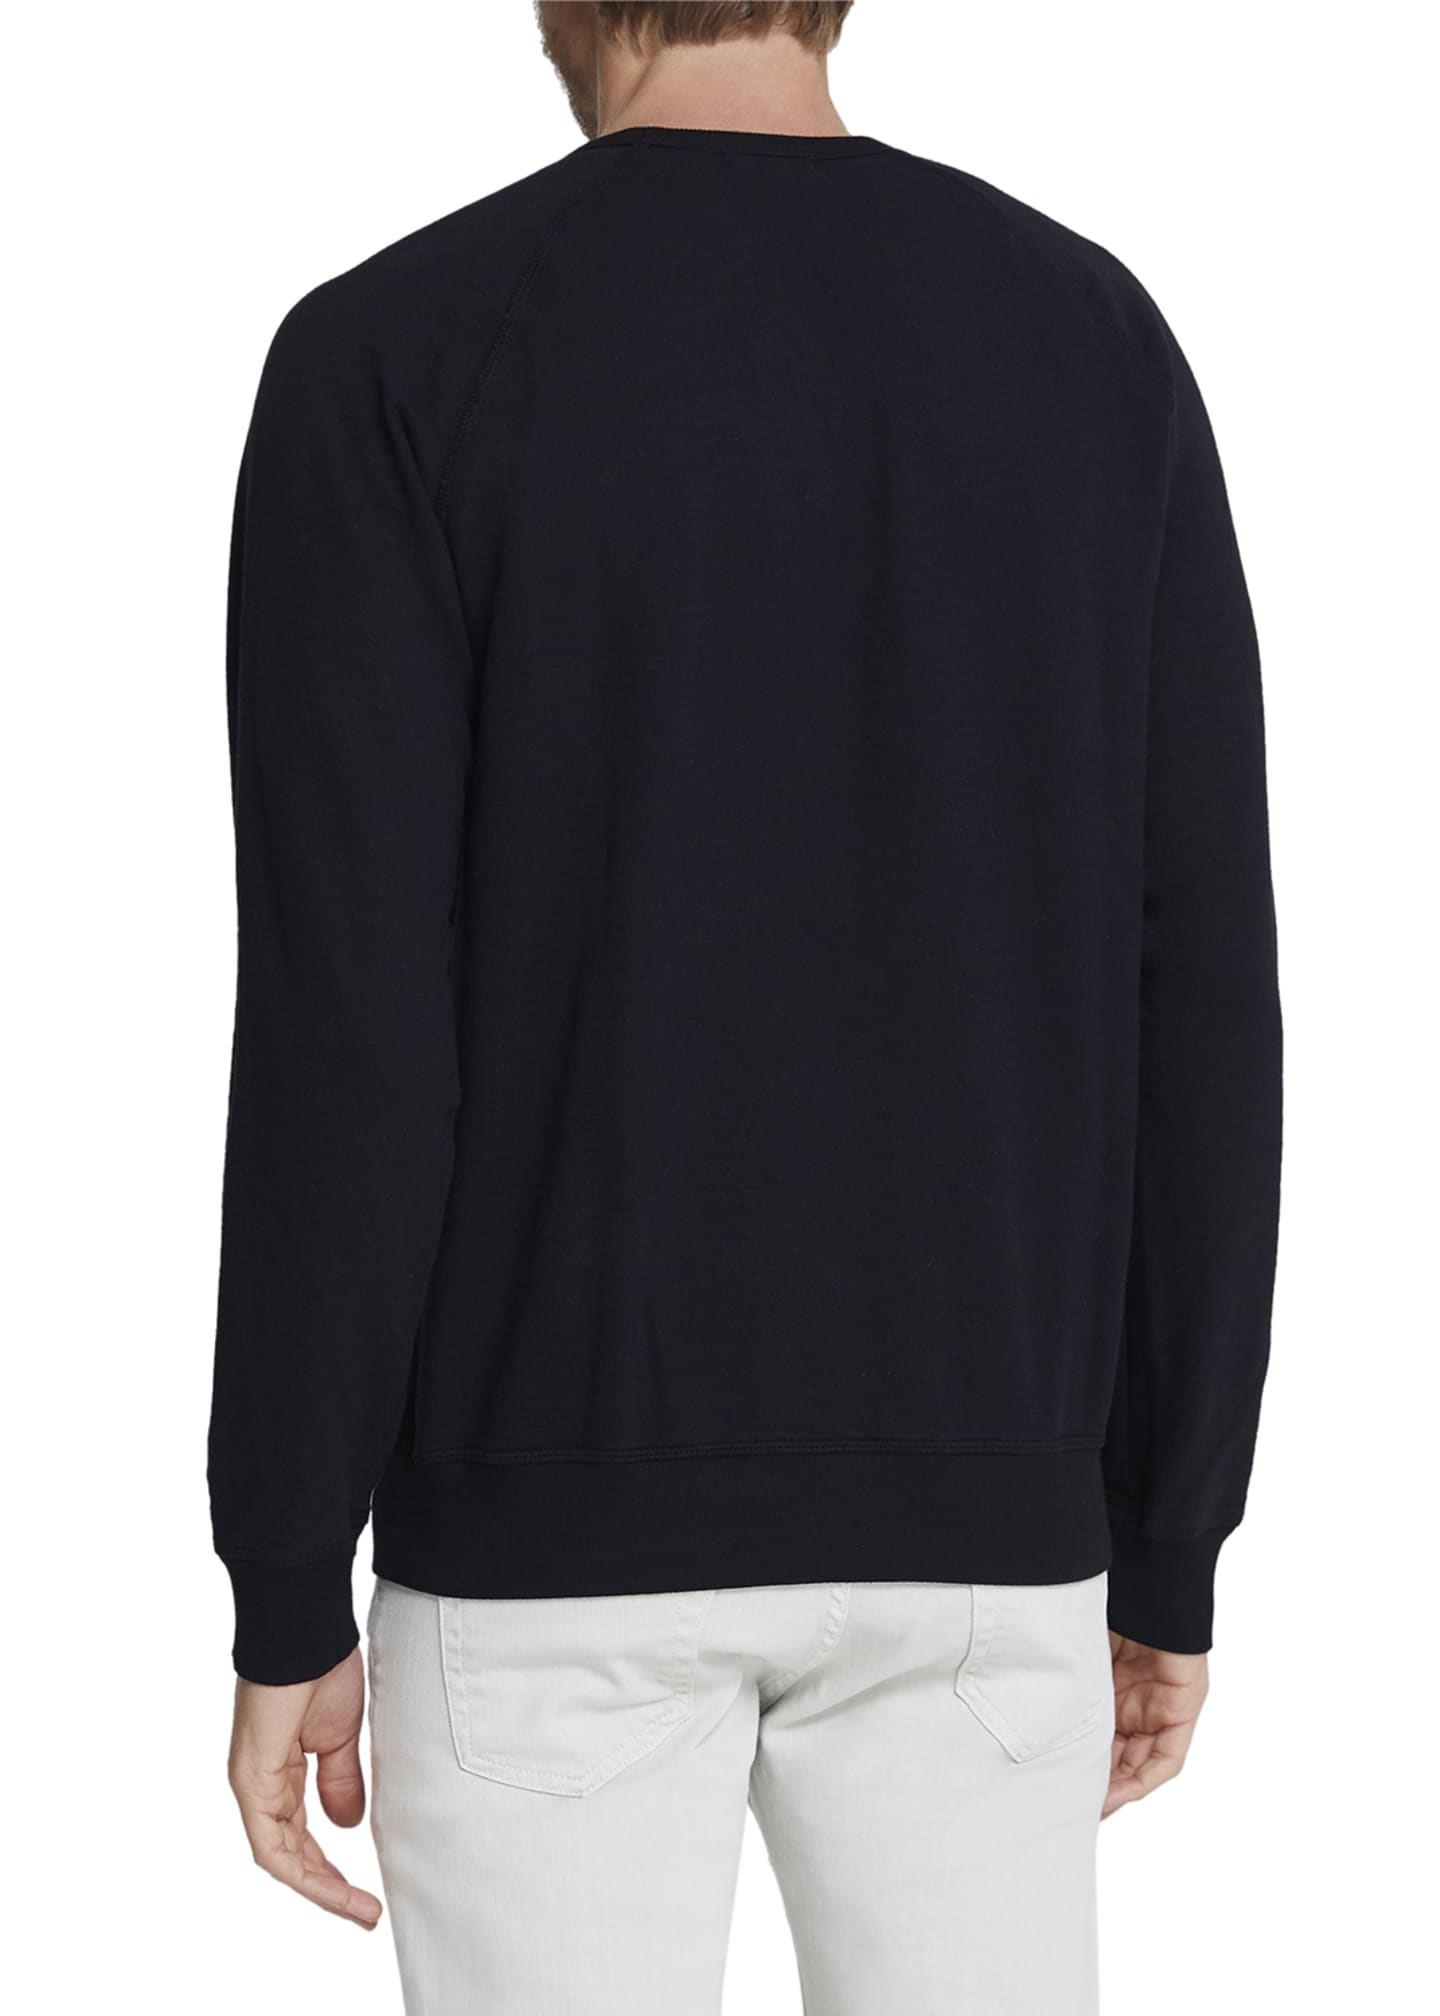 Image 2 of 2: Men's Siris Solid Cotton Crewneck Sweatshirt